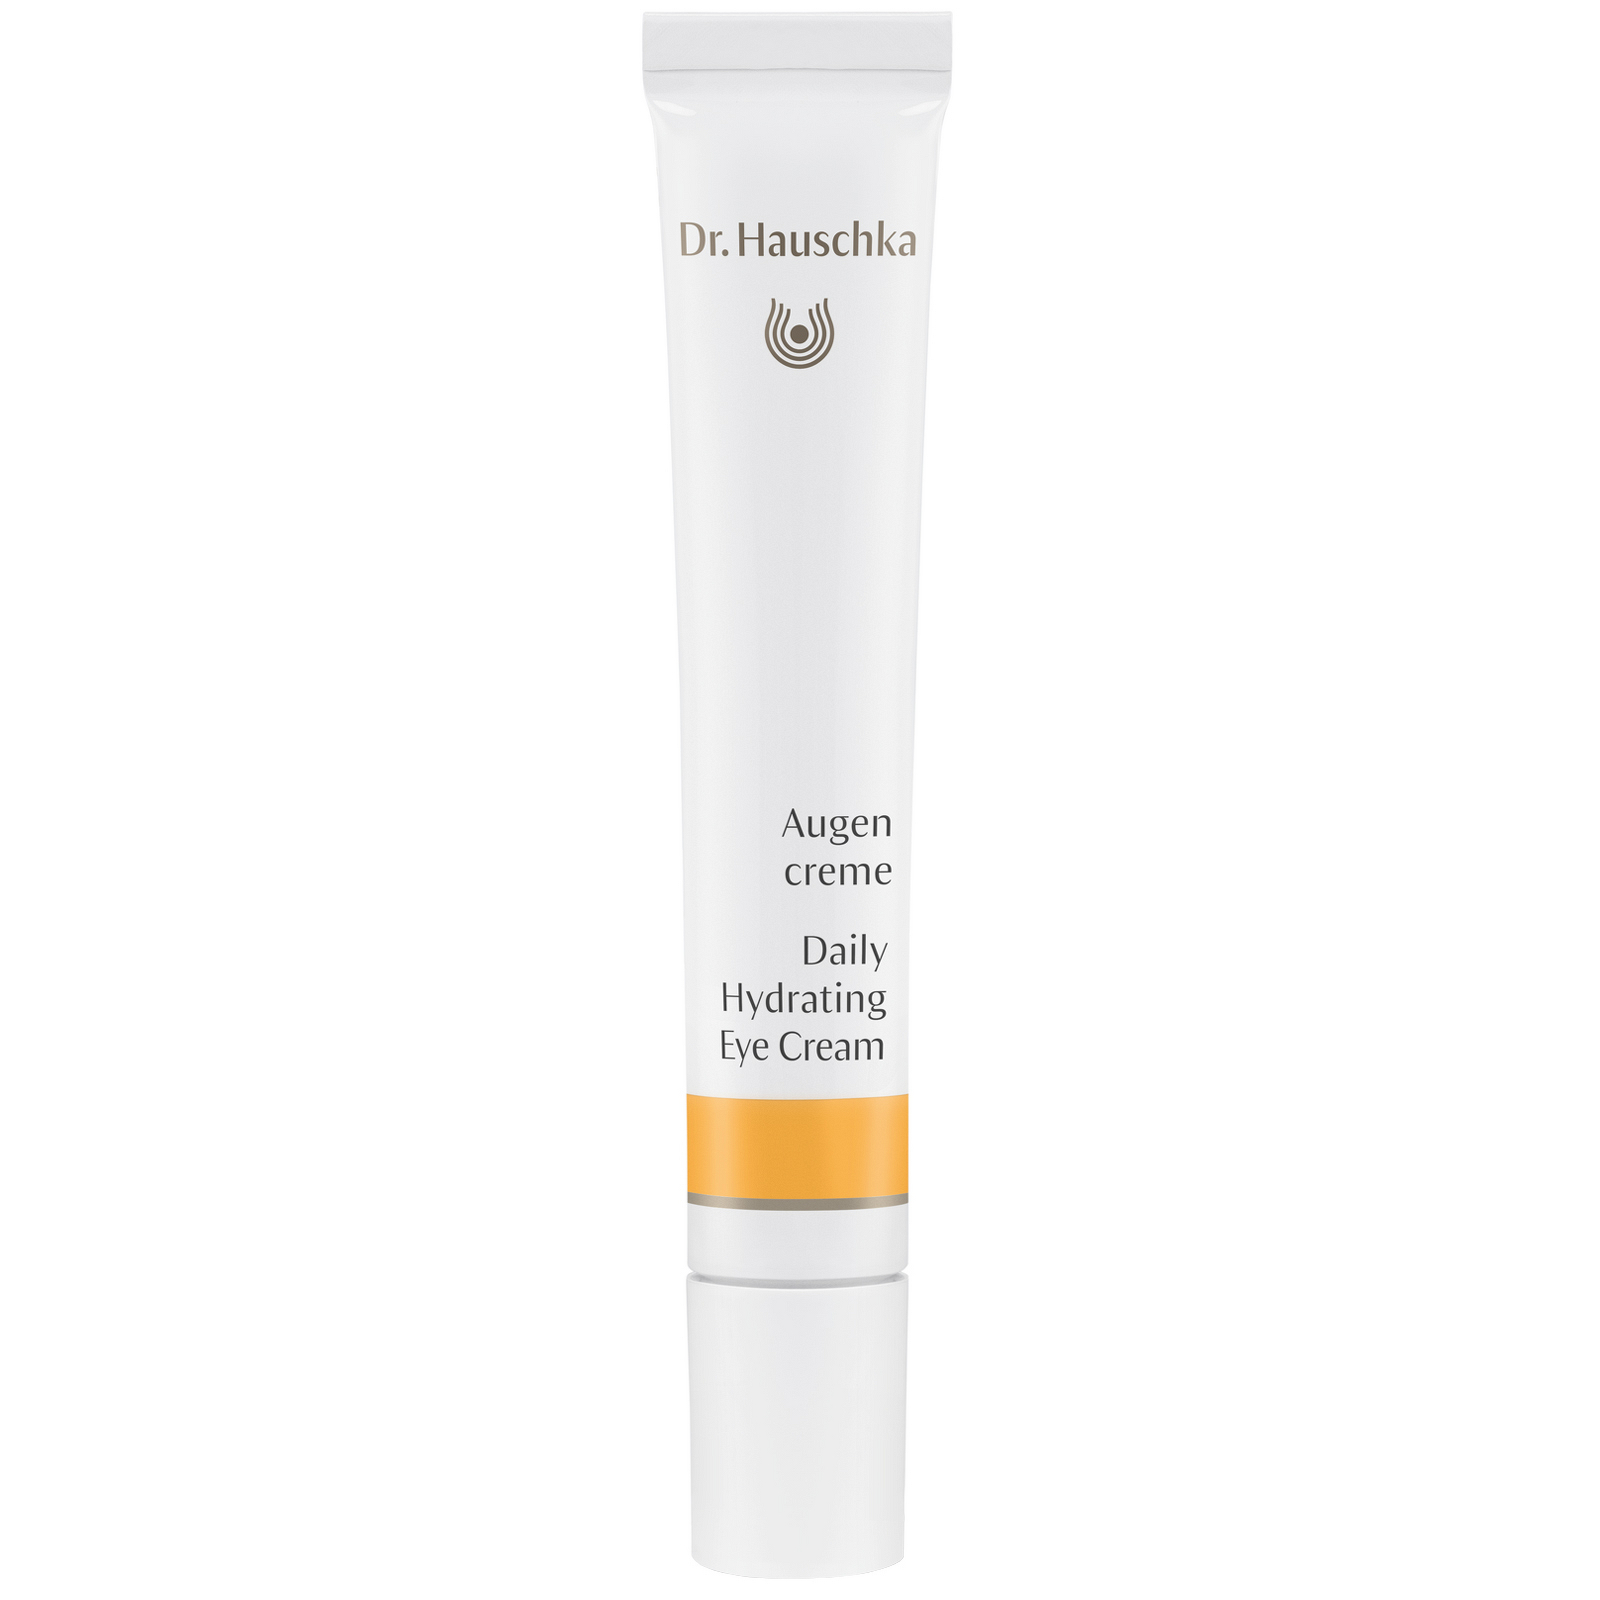 Dr. Hauschka Face Care Daily Hydrating Eye Cream 12.5ml